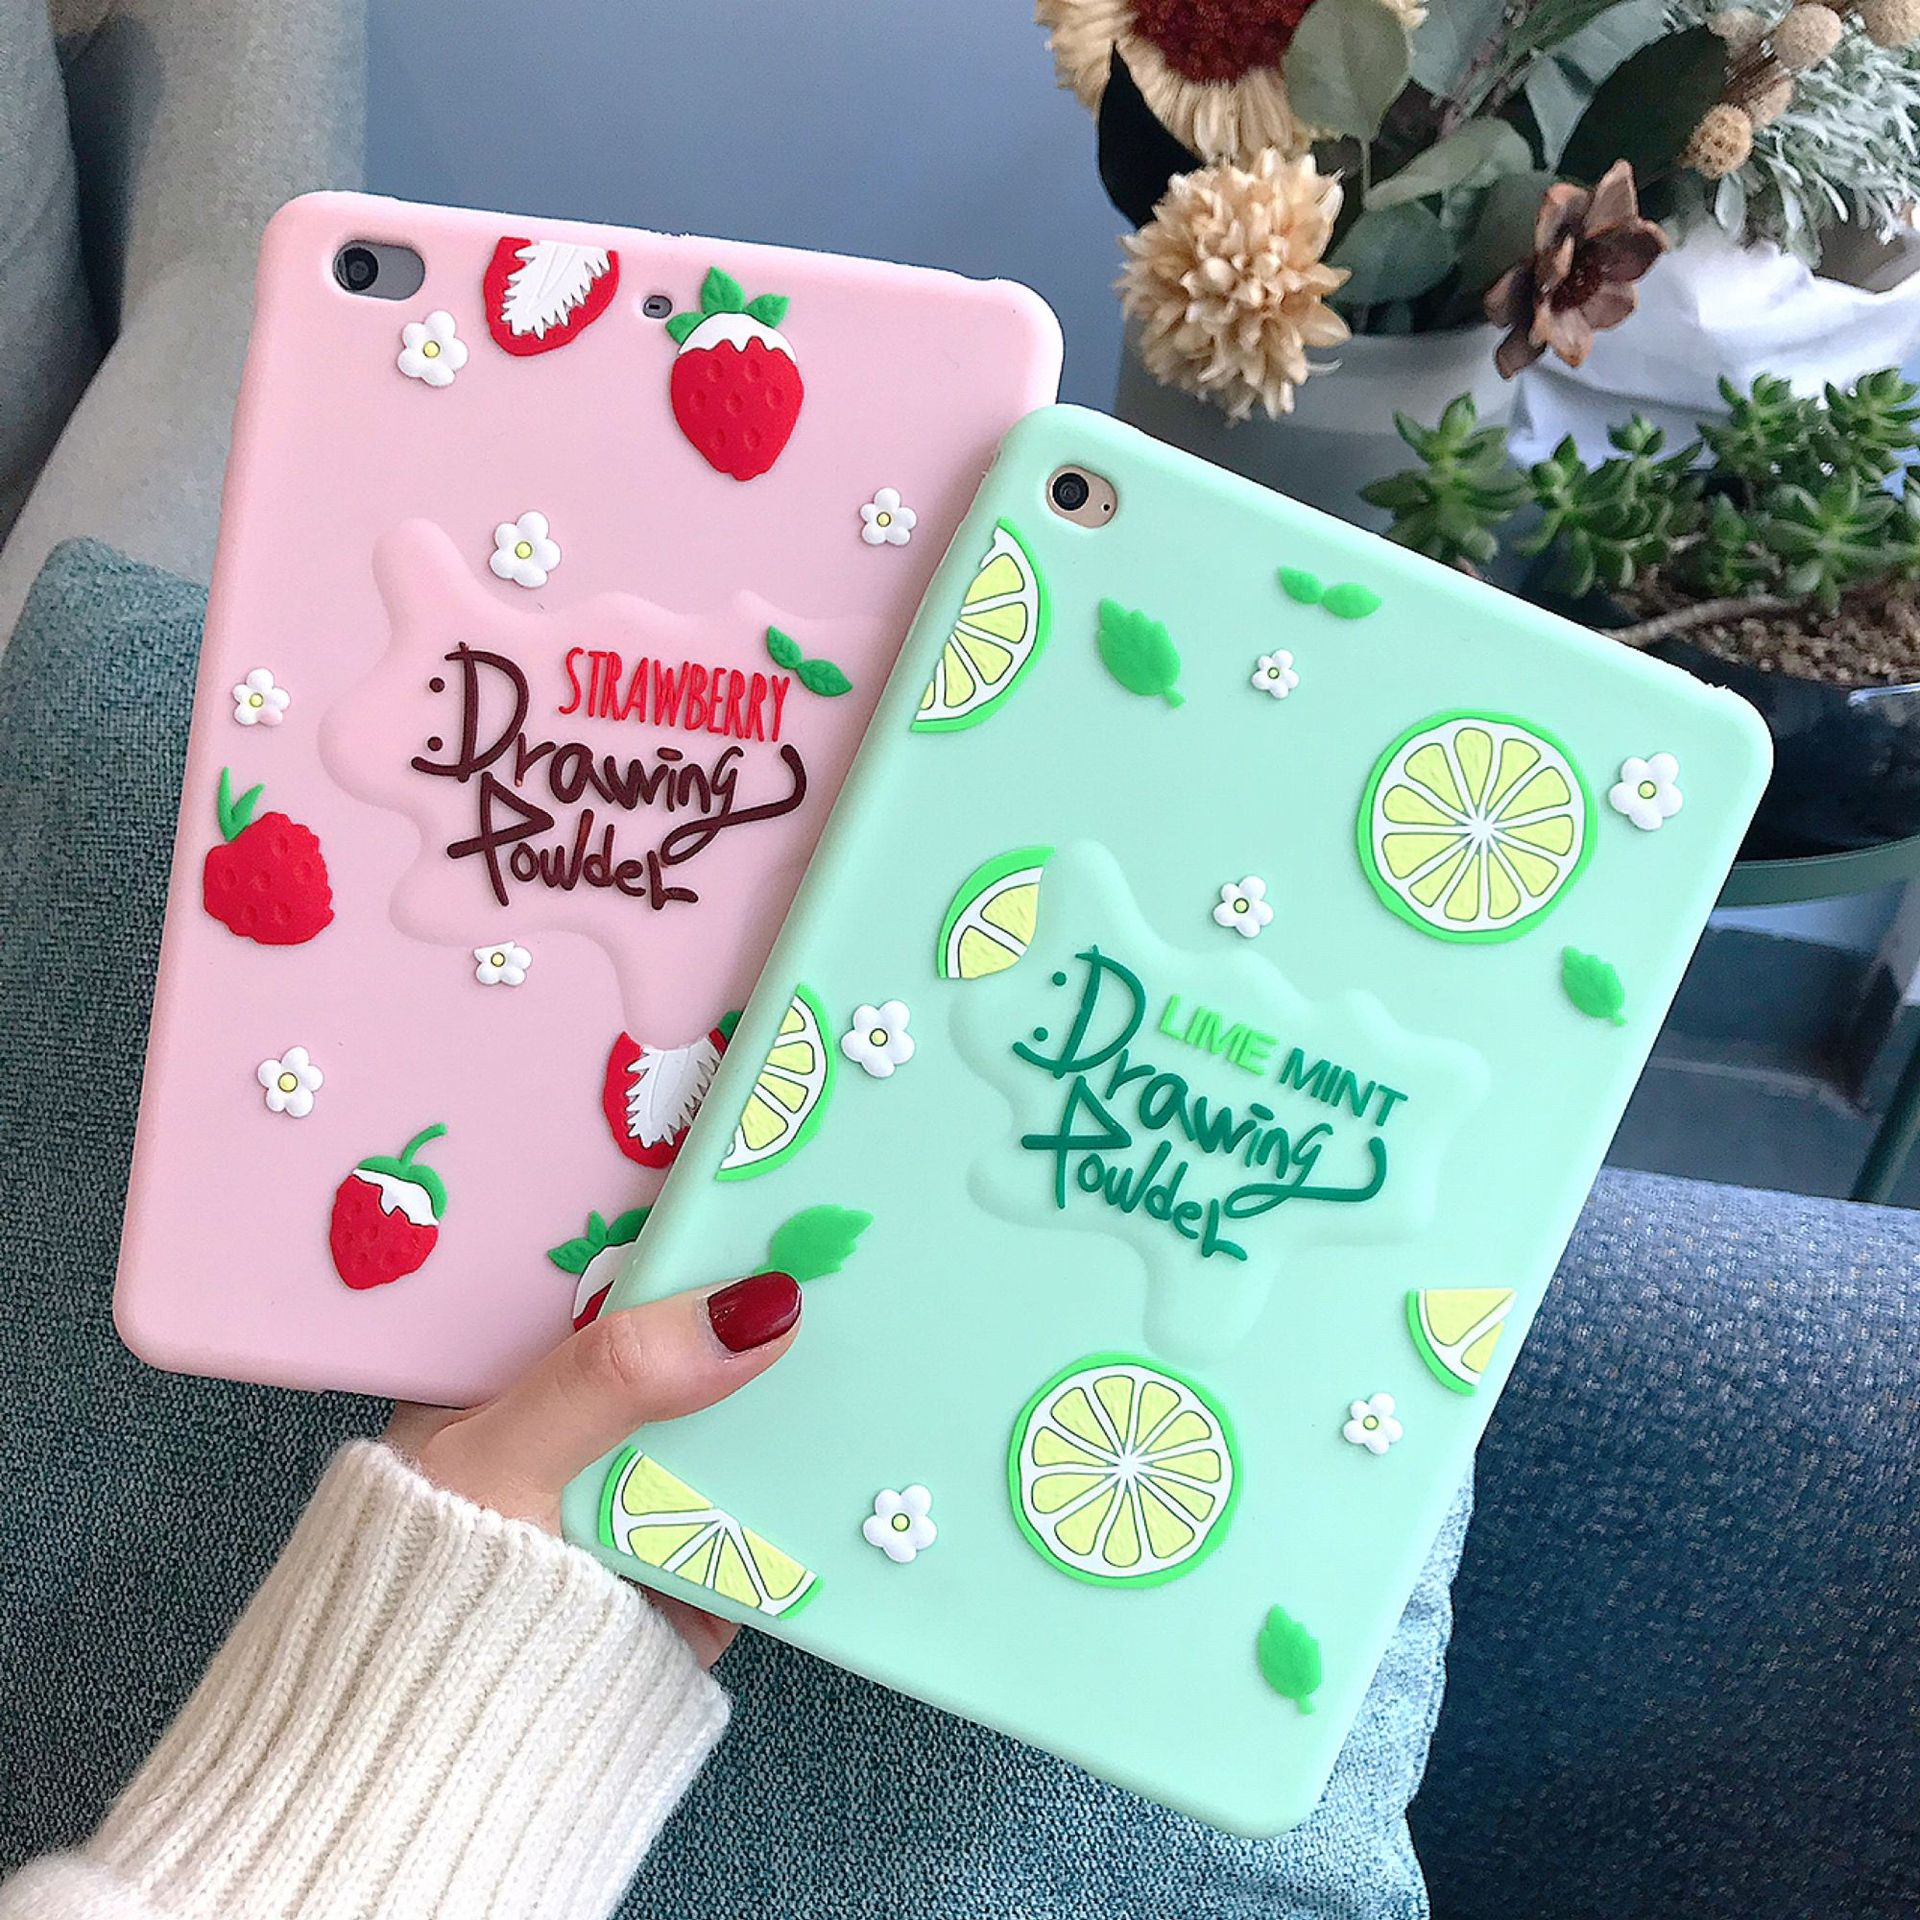 For New IPad 9.7 2017 2018 Case TPU Silicon Fruit Pattern Soft Cover for IPad Air 2 Air 1 6th Generation Strawberry Coque Funda